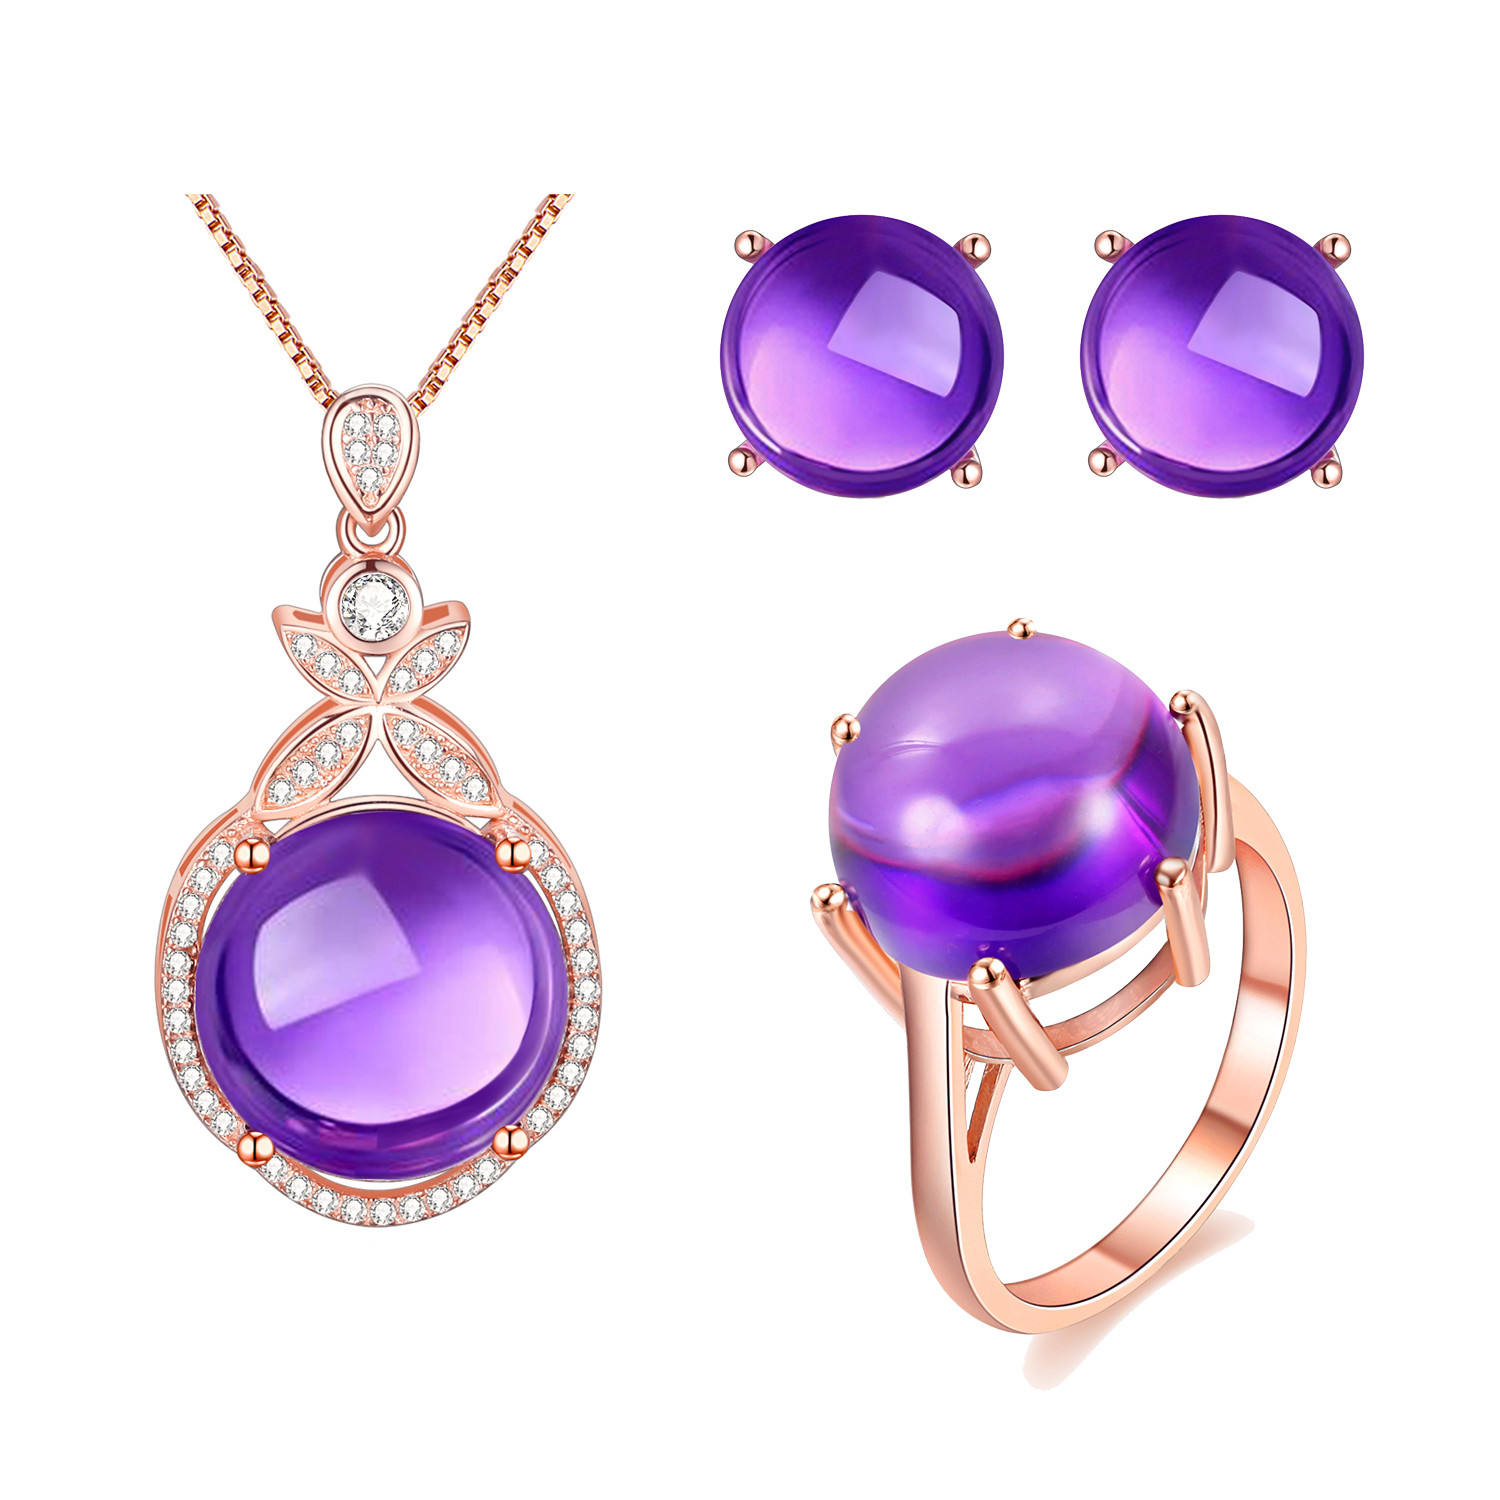 USPS Purple Amethyst Necklace Earrings Ring Women Rose Gold Color 925 Sterling Silver Anniversary Wedding Jewelry Set CT005